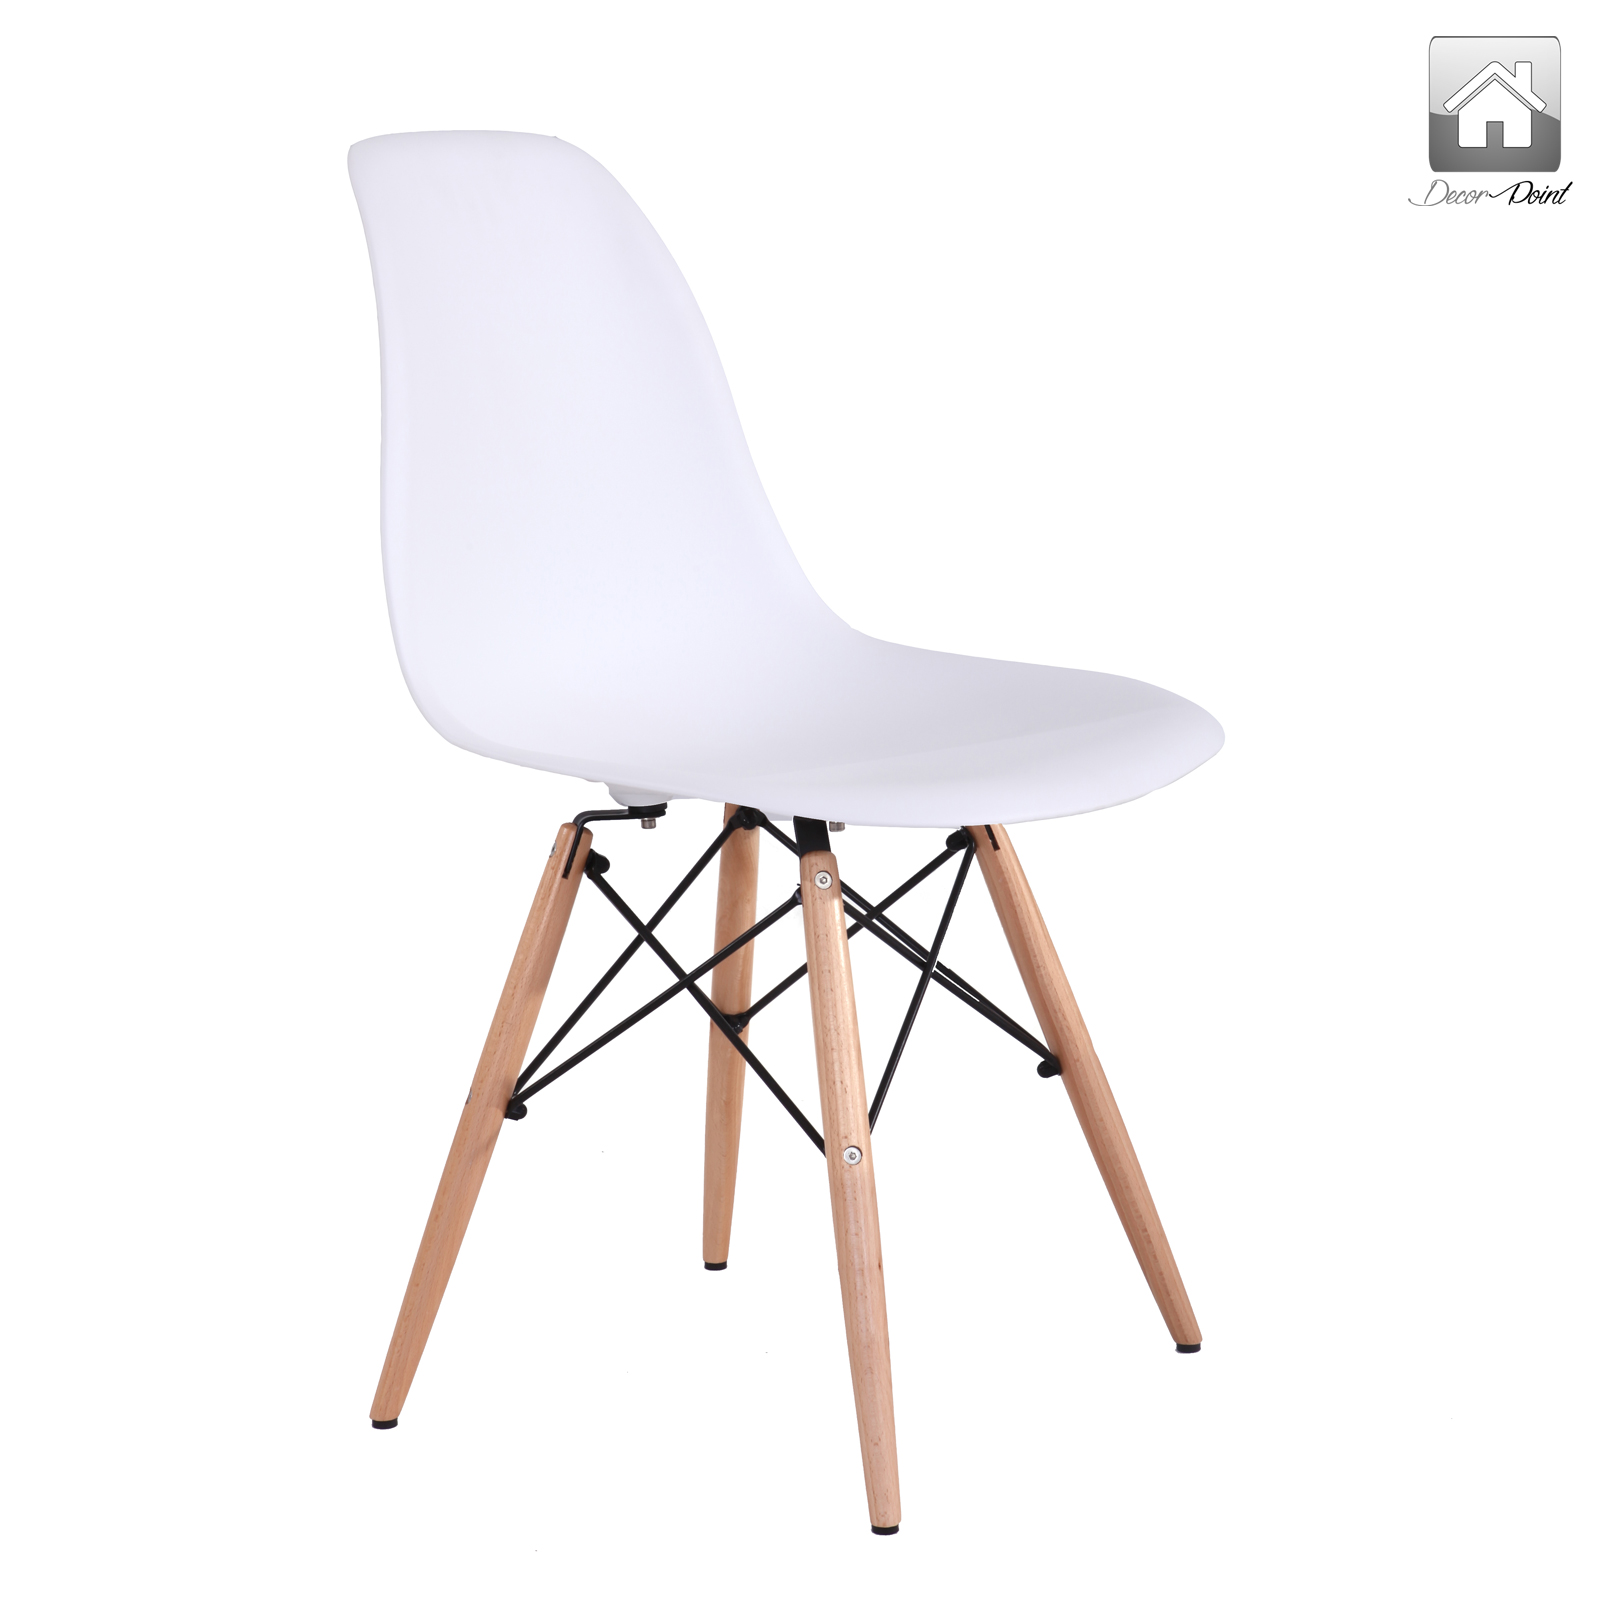 12 X Retro Replica Eames Chick Dsw Dining Chairs Office  : Eames Chick White 06 from www.50han.com size 1600 x 1600 jpeg 268kB